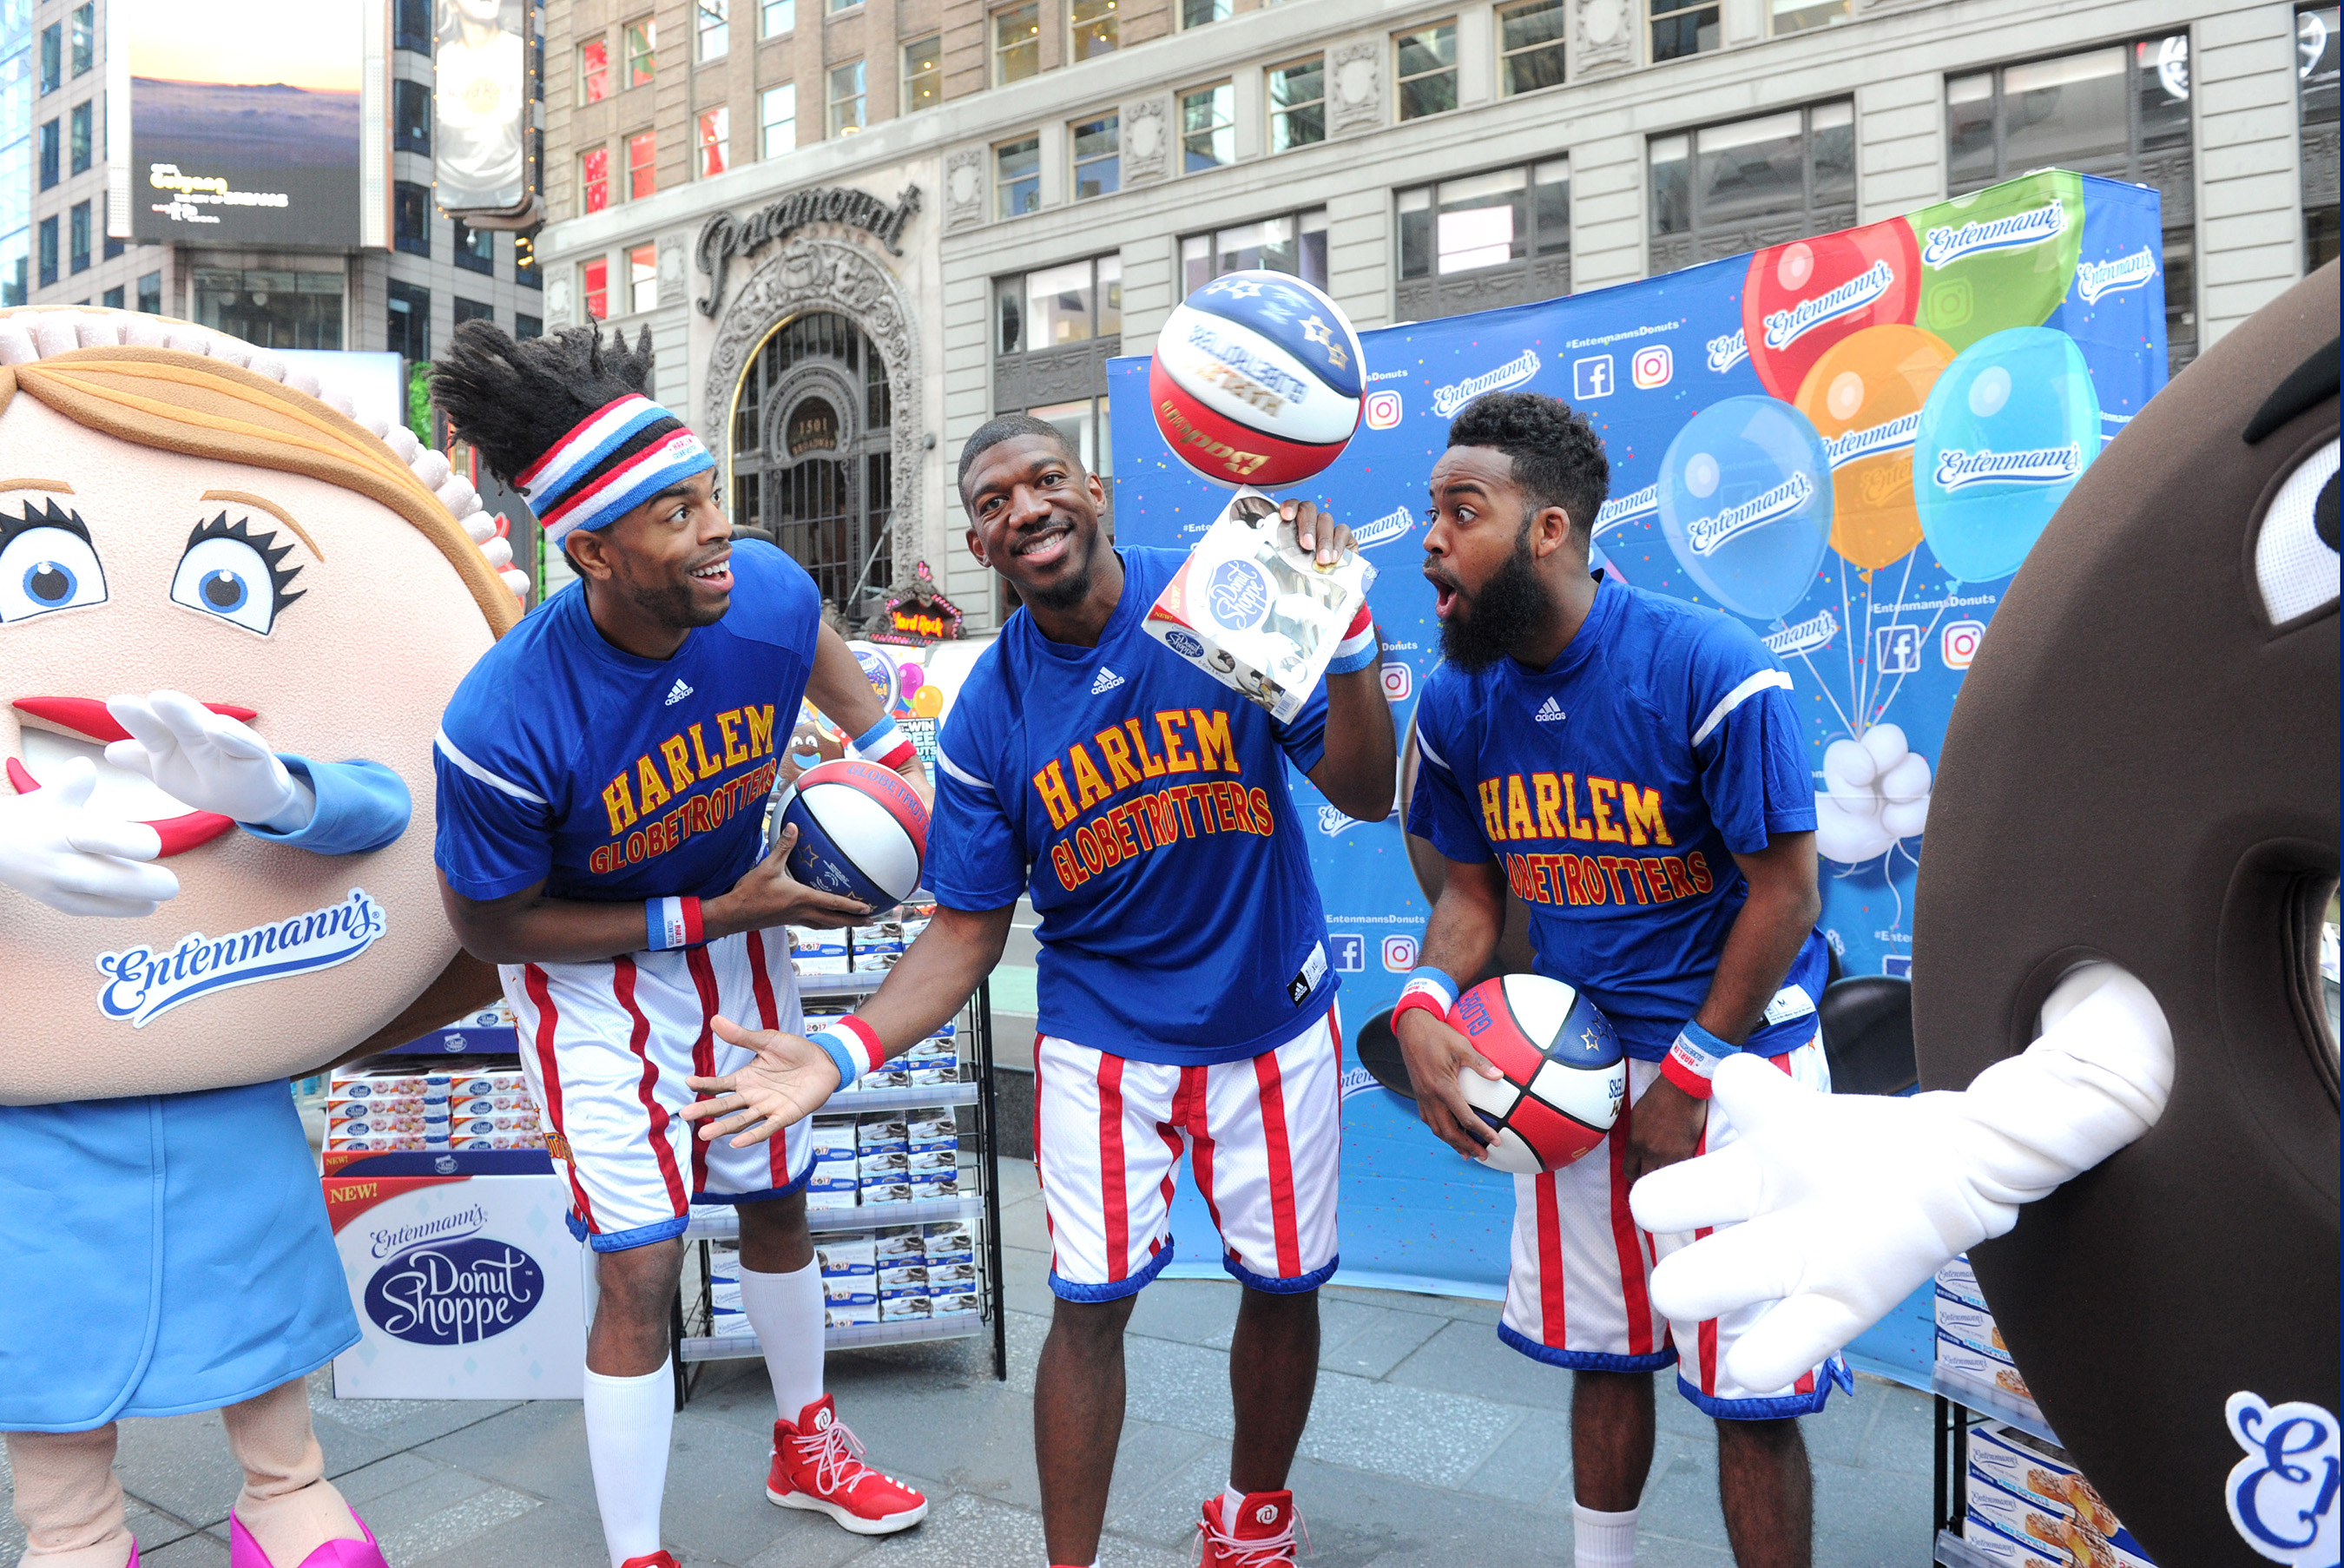 Entenmann's teams up with the world famous Harlem Globetrotters to celebrate National Donut Day in New York's Times Square, Friday, June 2, 2017. Over 40,000 Entenmann's Rich Frosted Donuts were handed out to fans across the city.